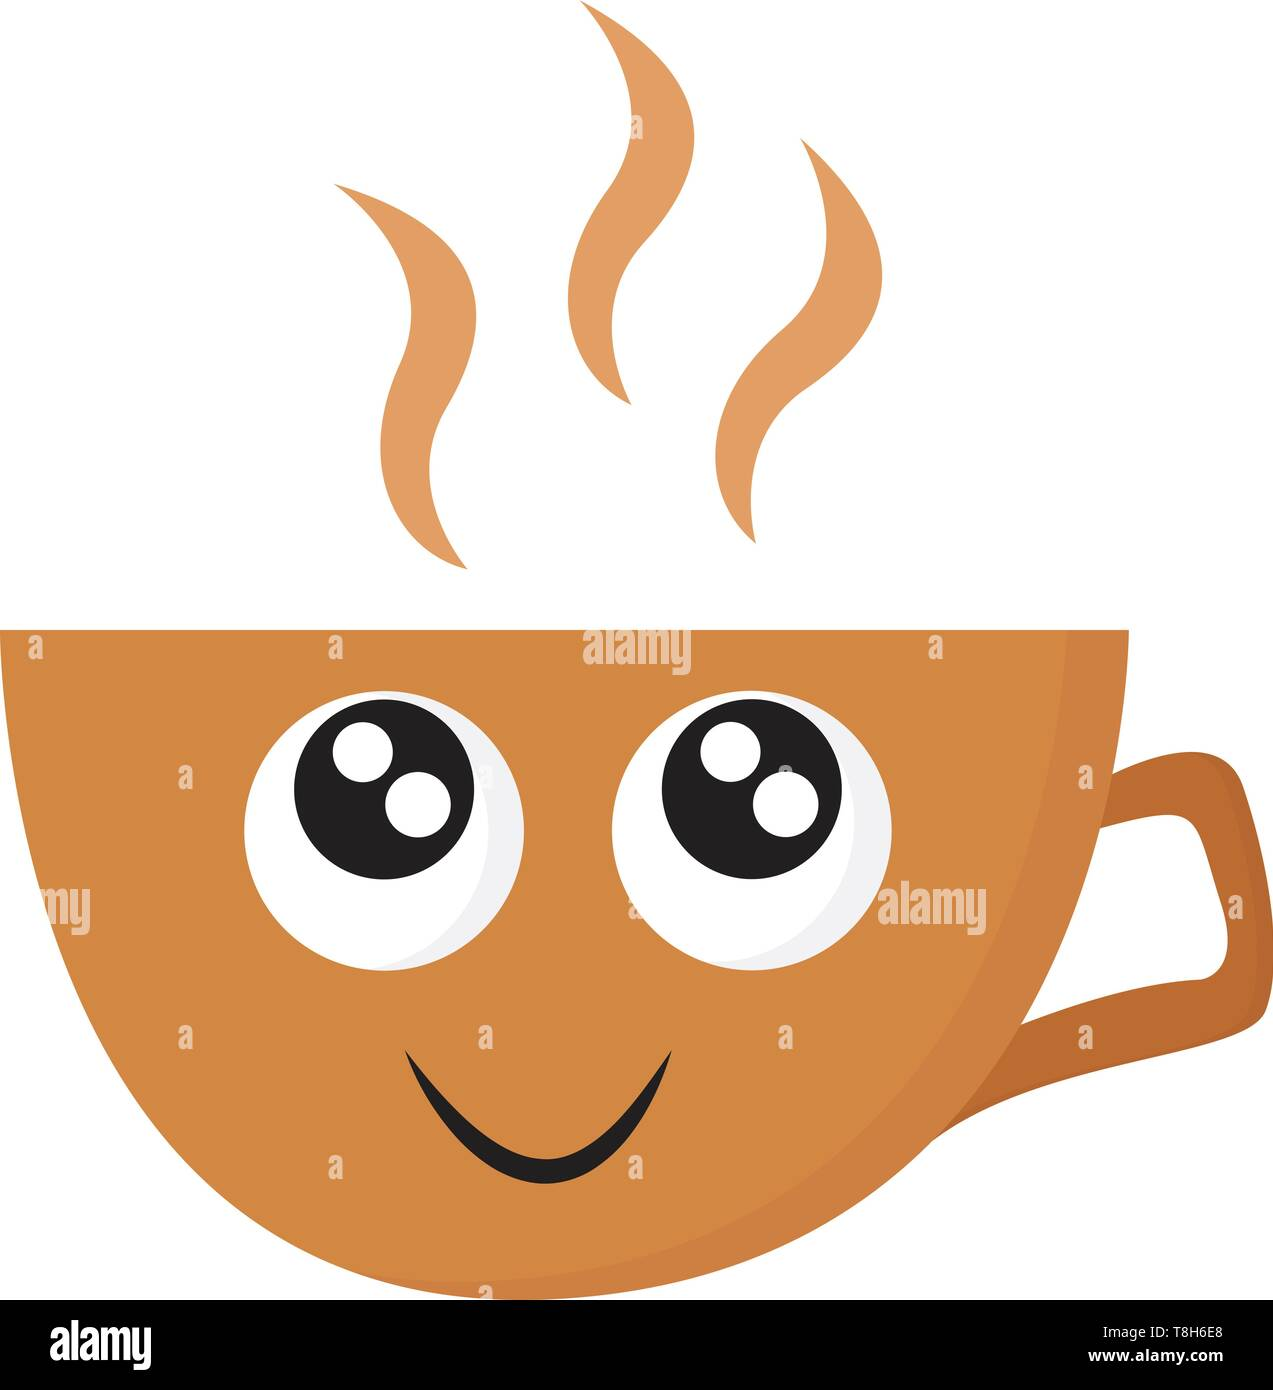 A Small Cute Coffee Cup In Orange Colour With Hot Coffee In It Vector Color Drawing Or Illustration Stock Vector Image Art Alamy